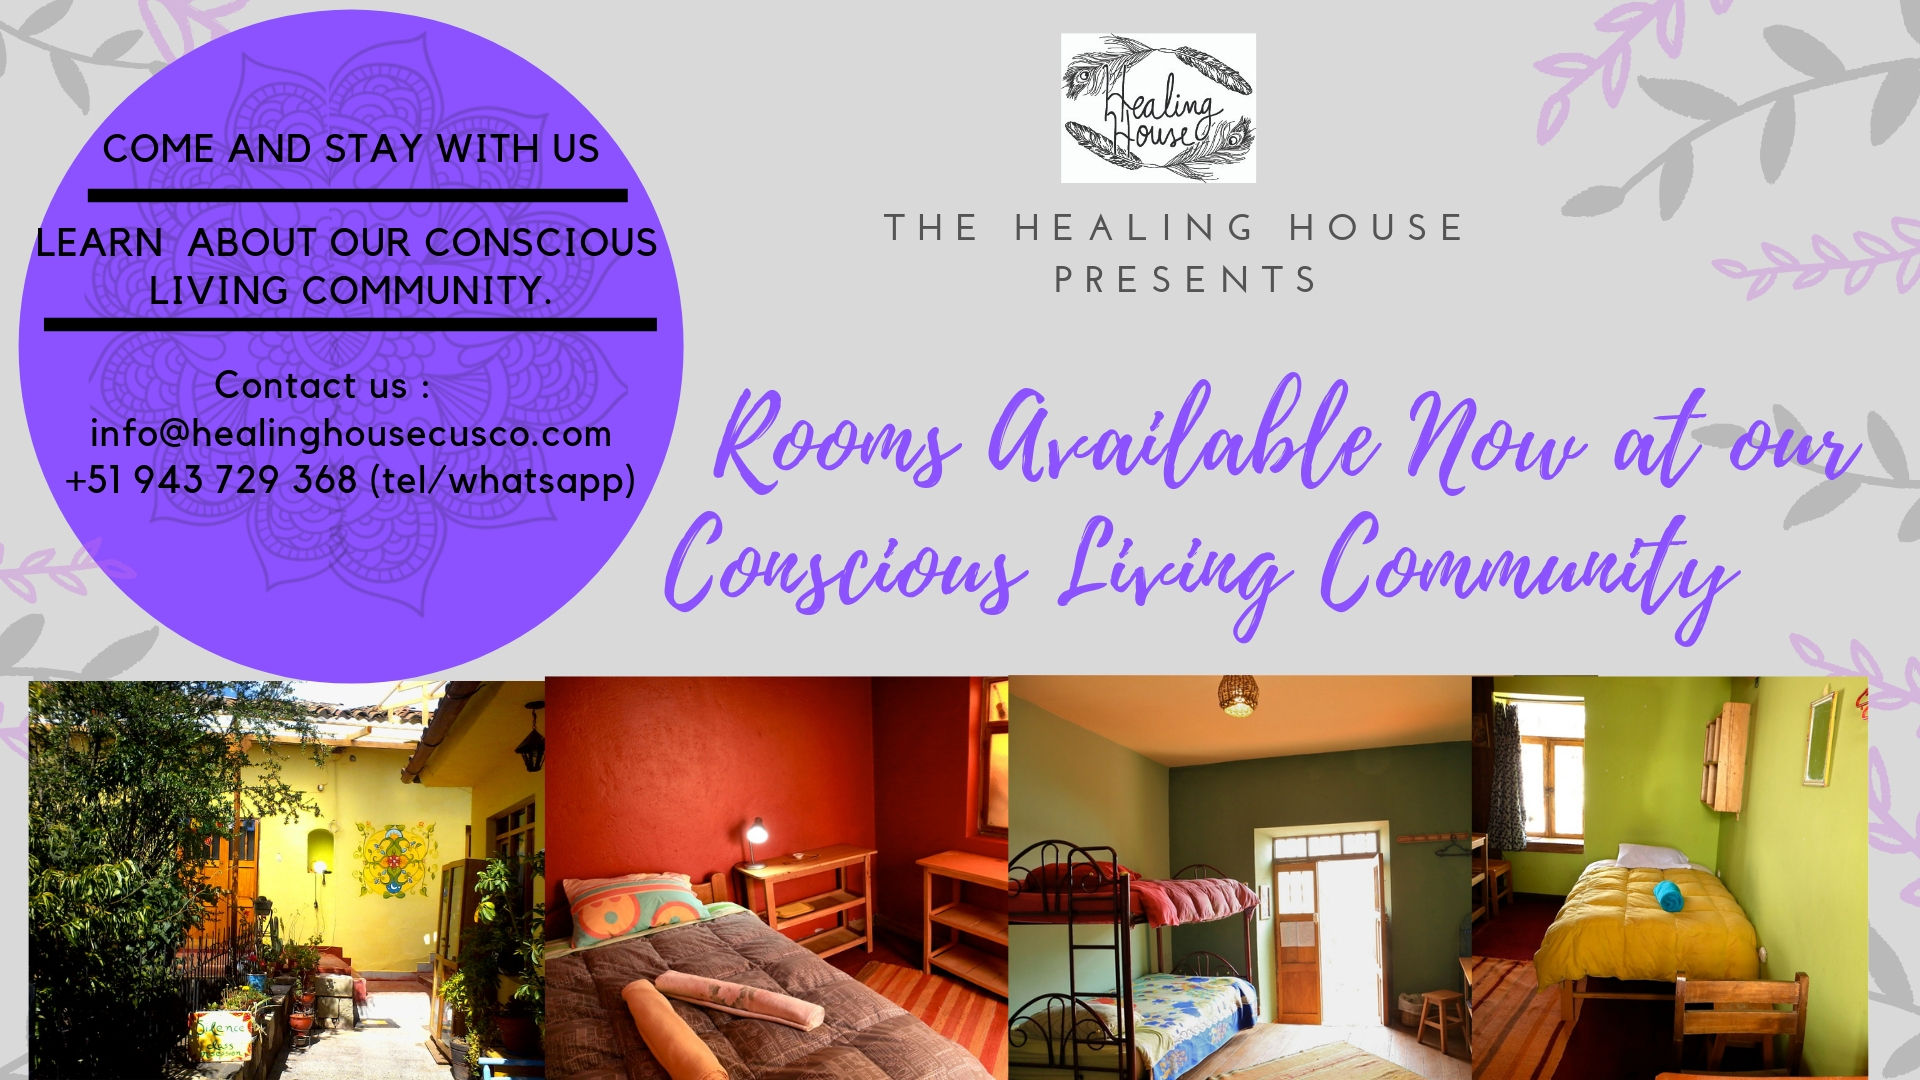 Come and stay with us - Learn about our Conscious Living Program!